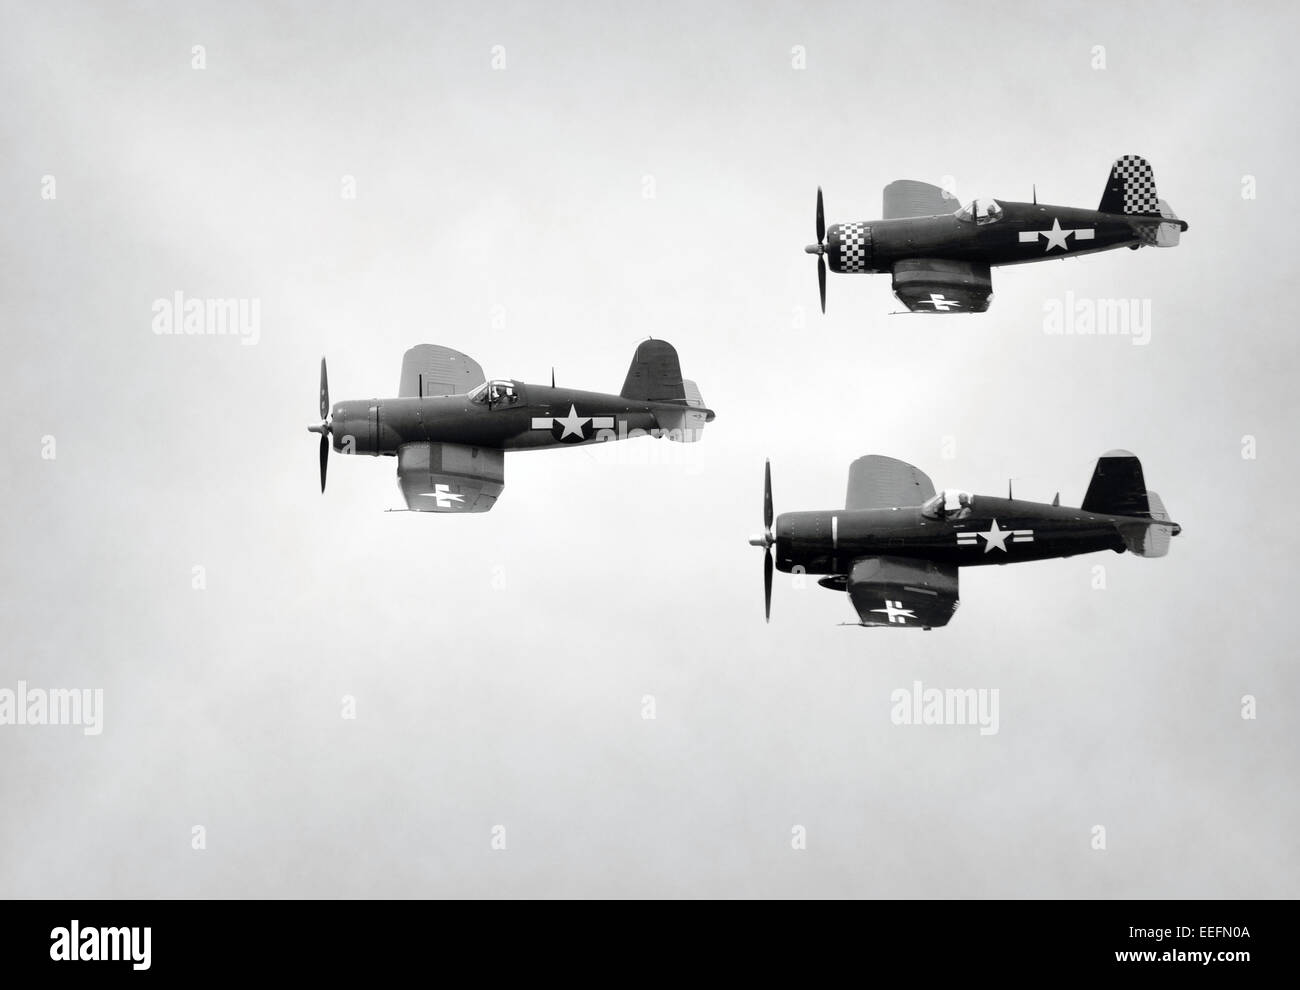 World War II era Navy fight airplanes in formation - Stock Image